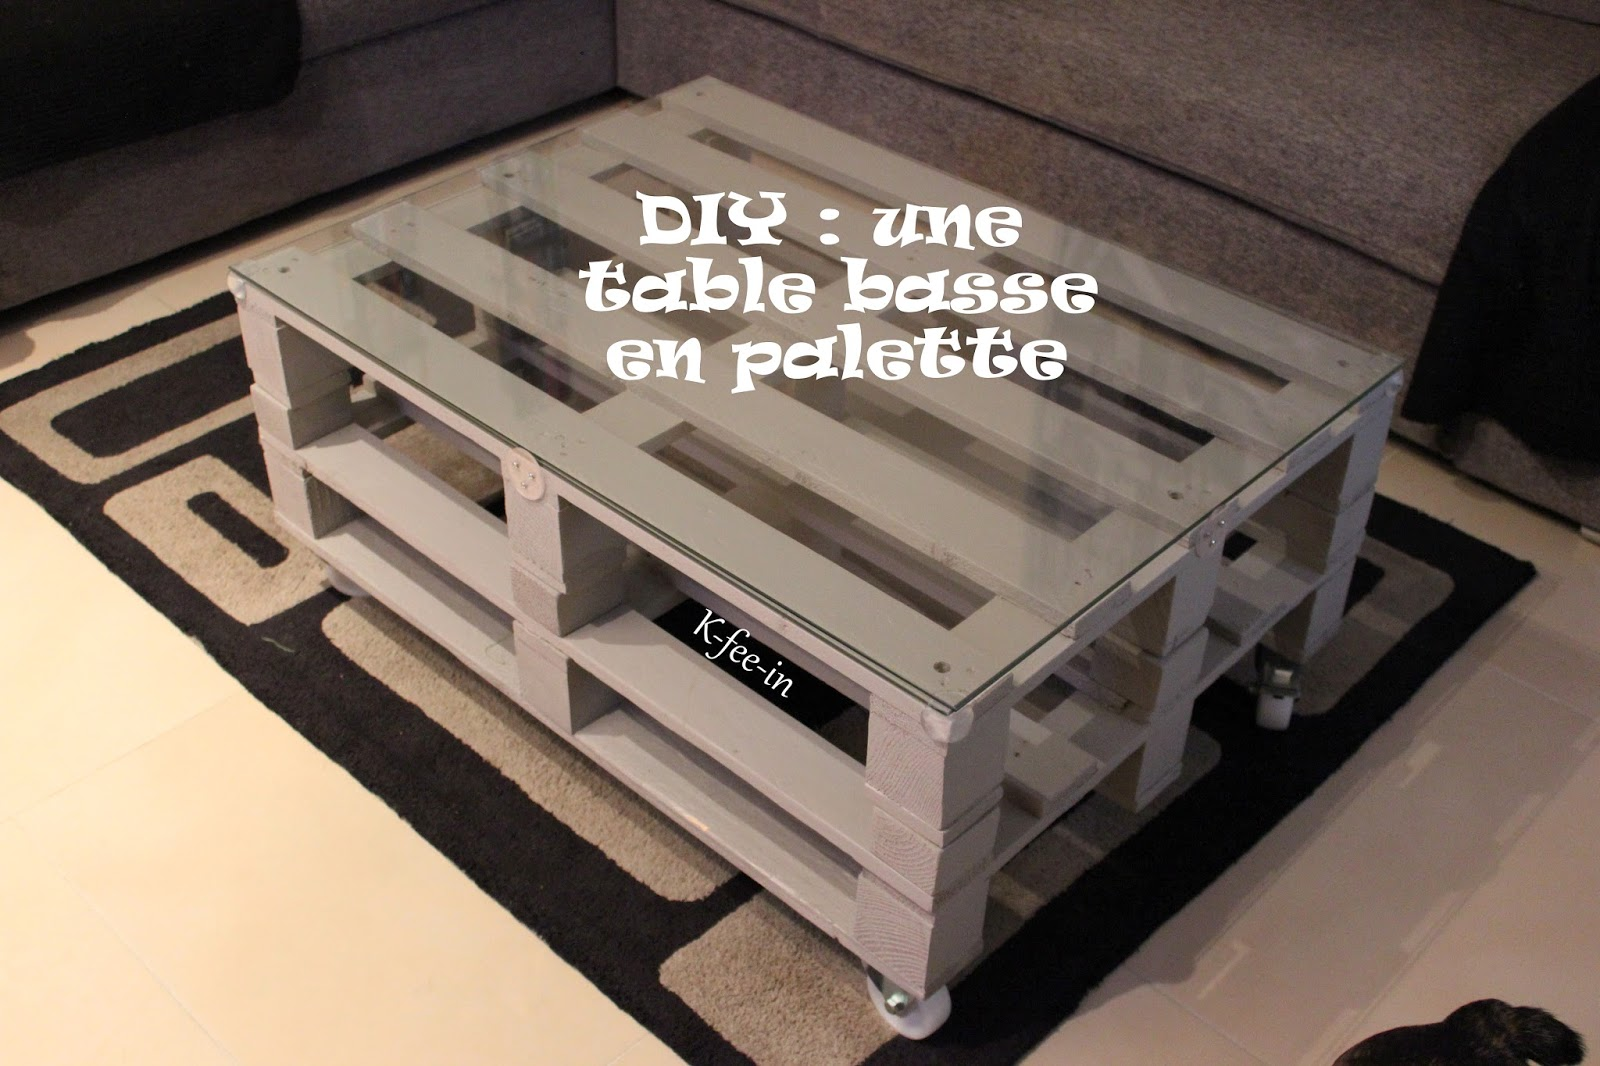 Diy une table basse en palette mini bonheur - Table basse fabrication maison ...